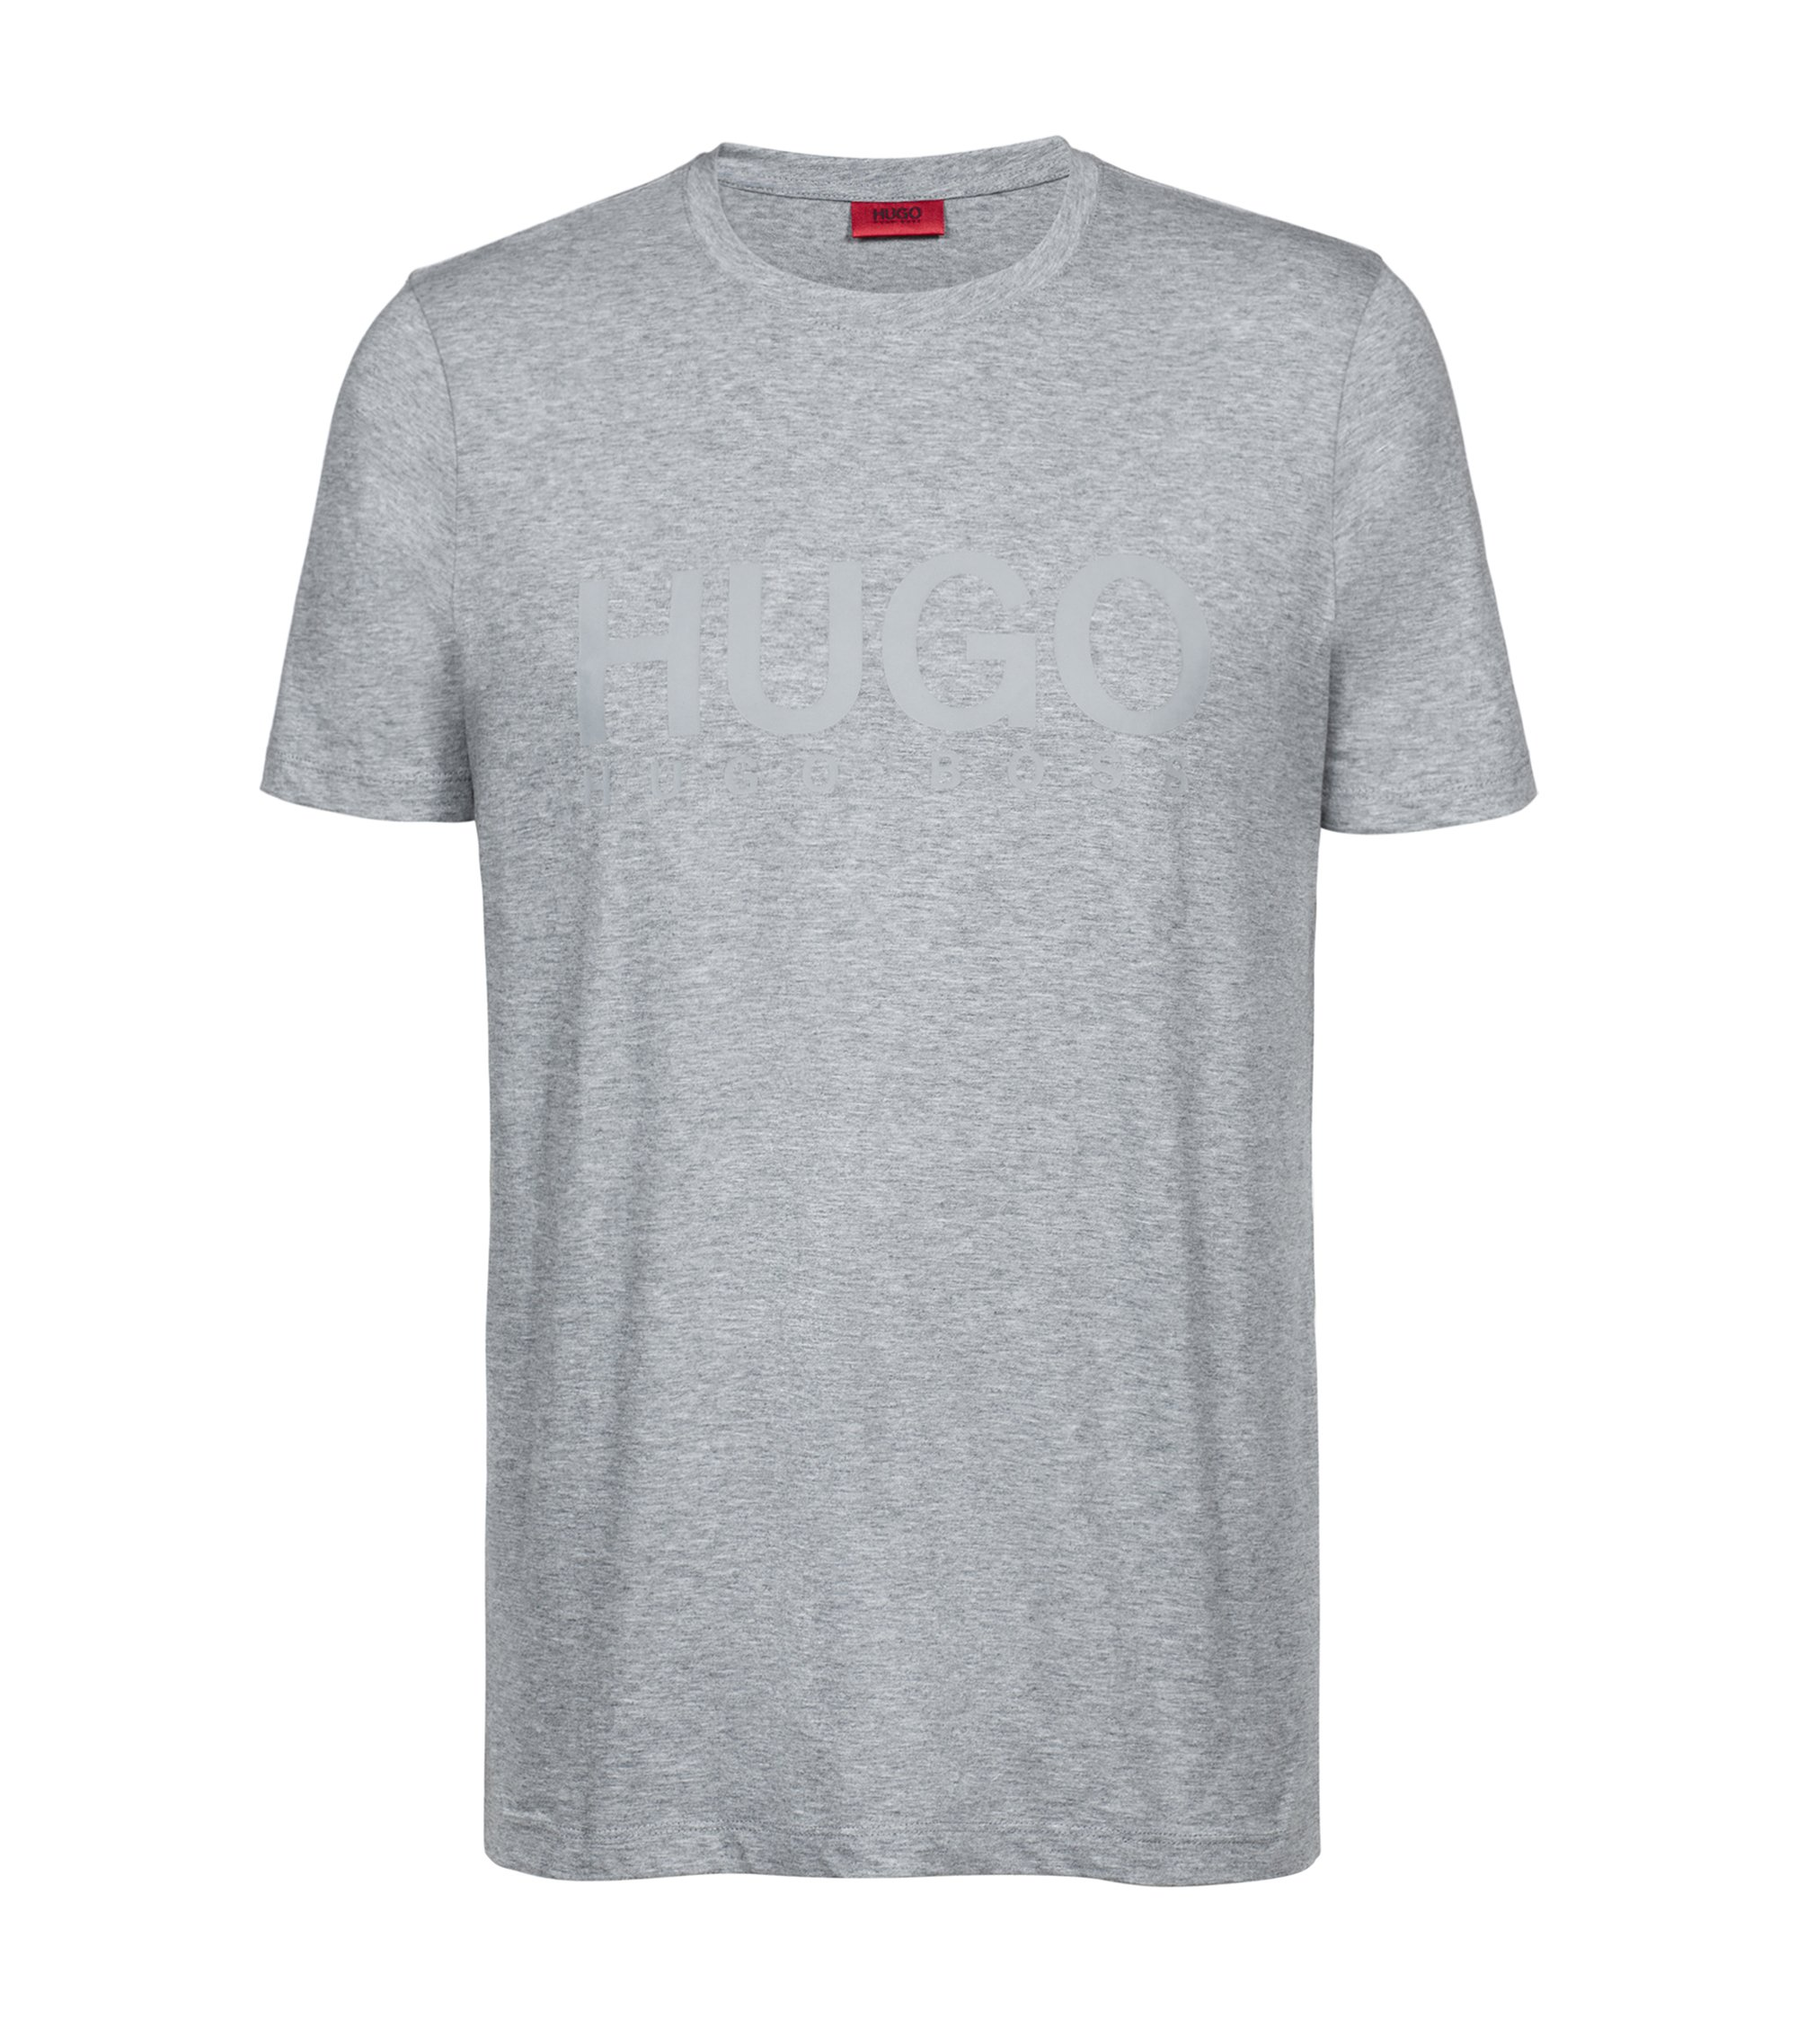 Logo T-shirt in single jersey cotton, Grey